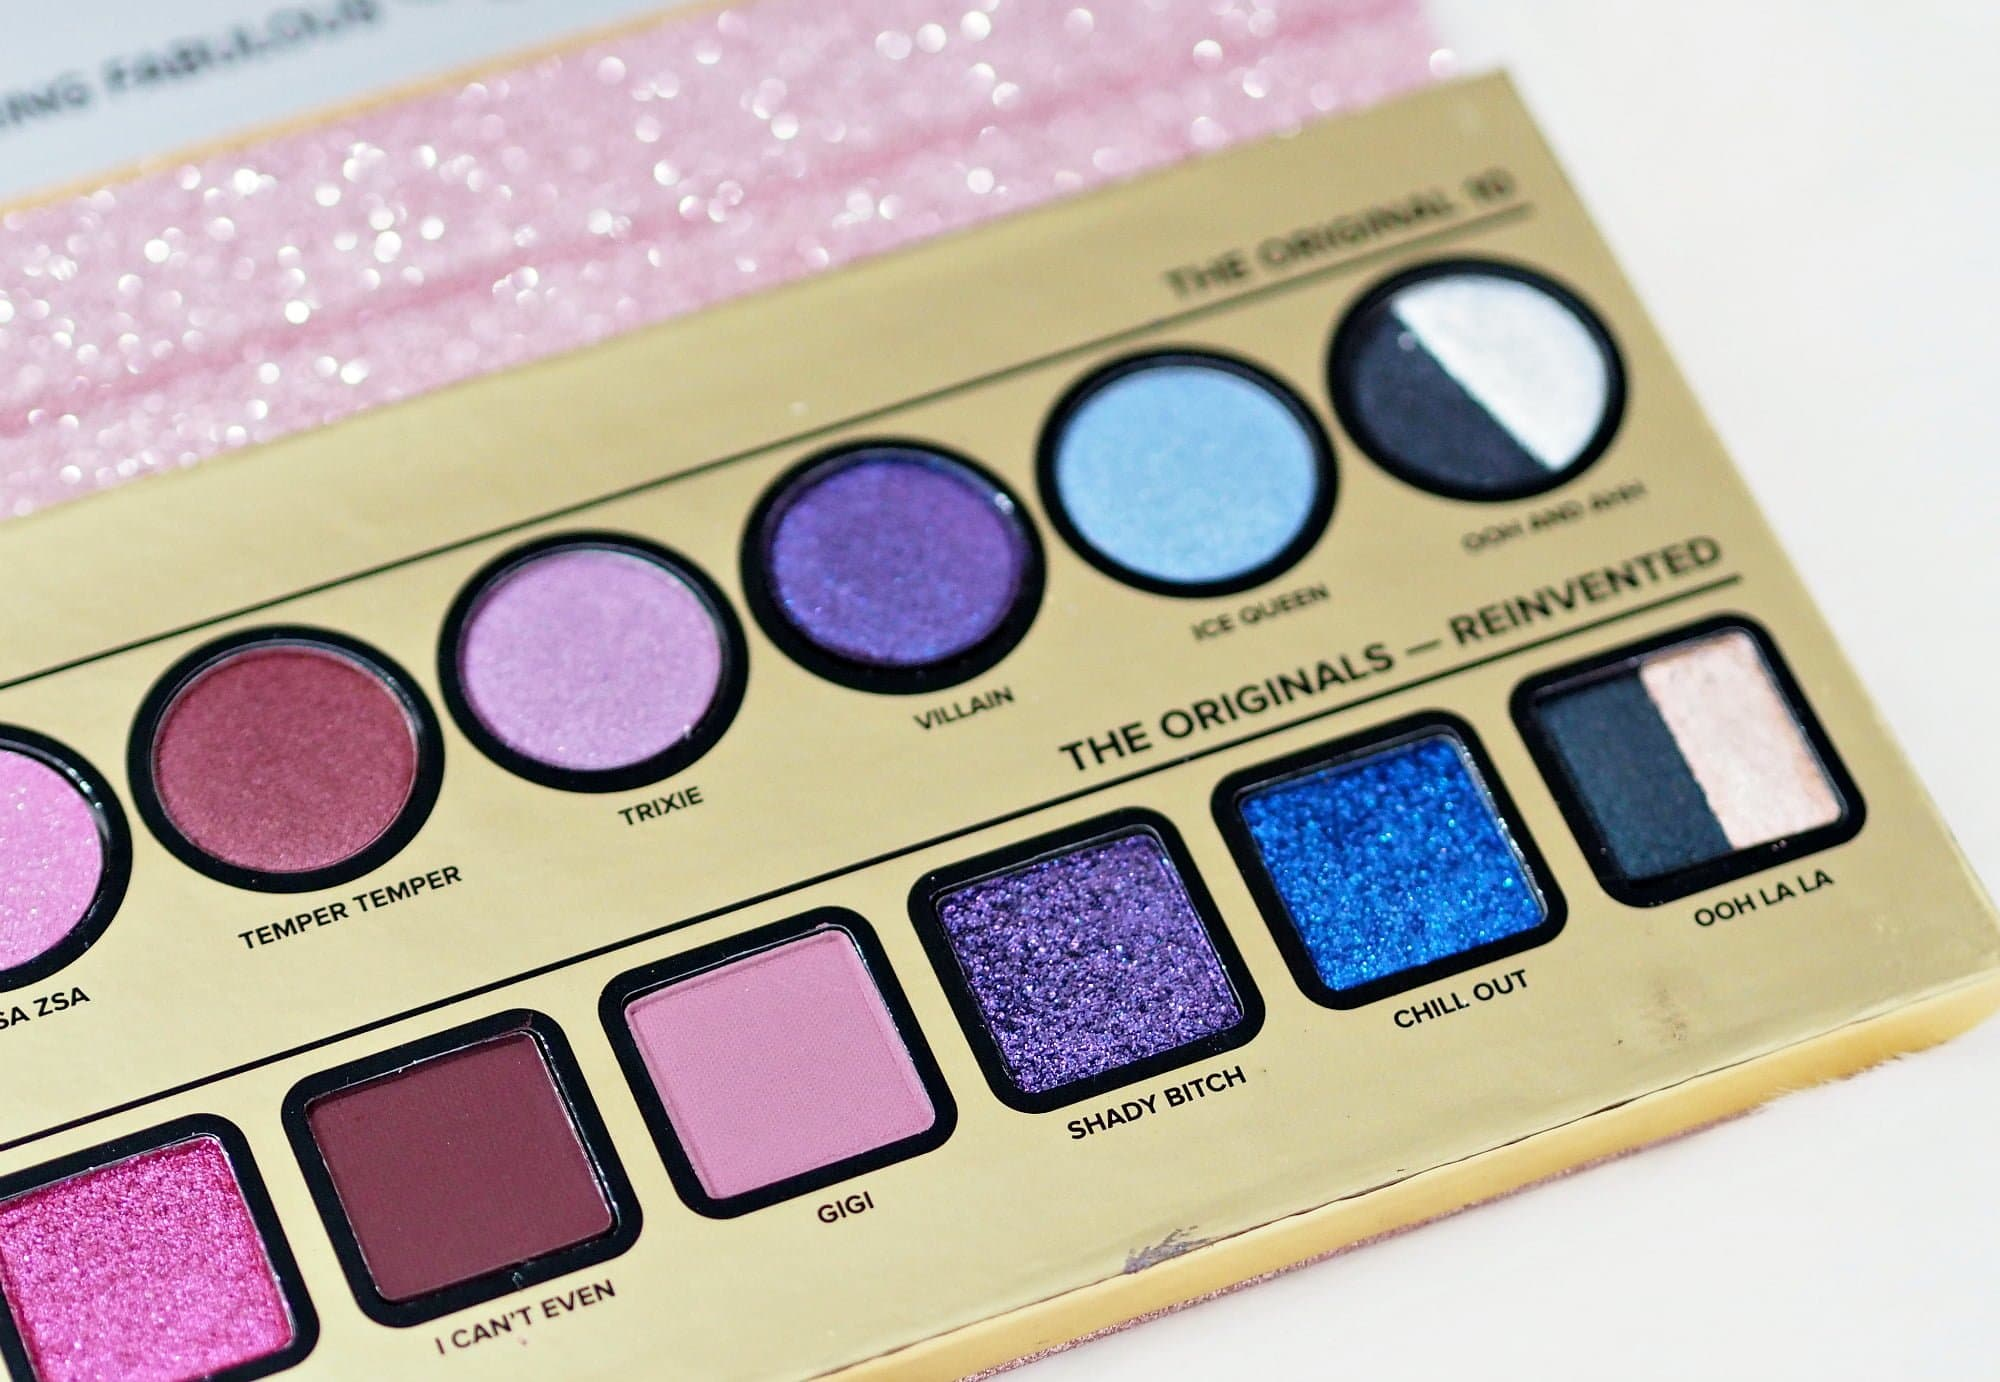 Review and Swatches of the Too Faced TF20 Makeup Collection ft the Then and Now Eyeshadow Palette, Mascara and Lipsticks.